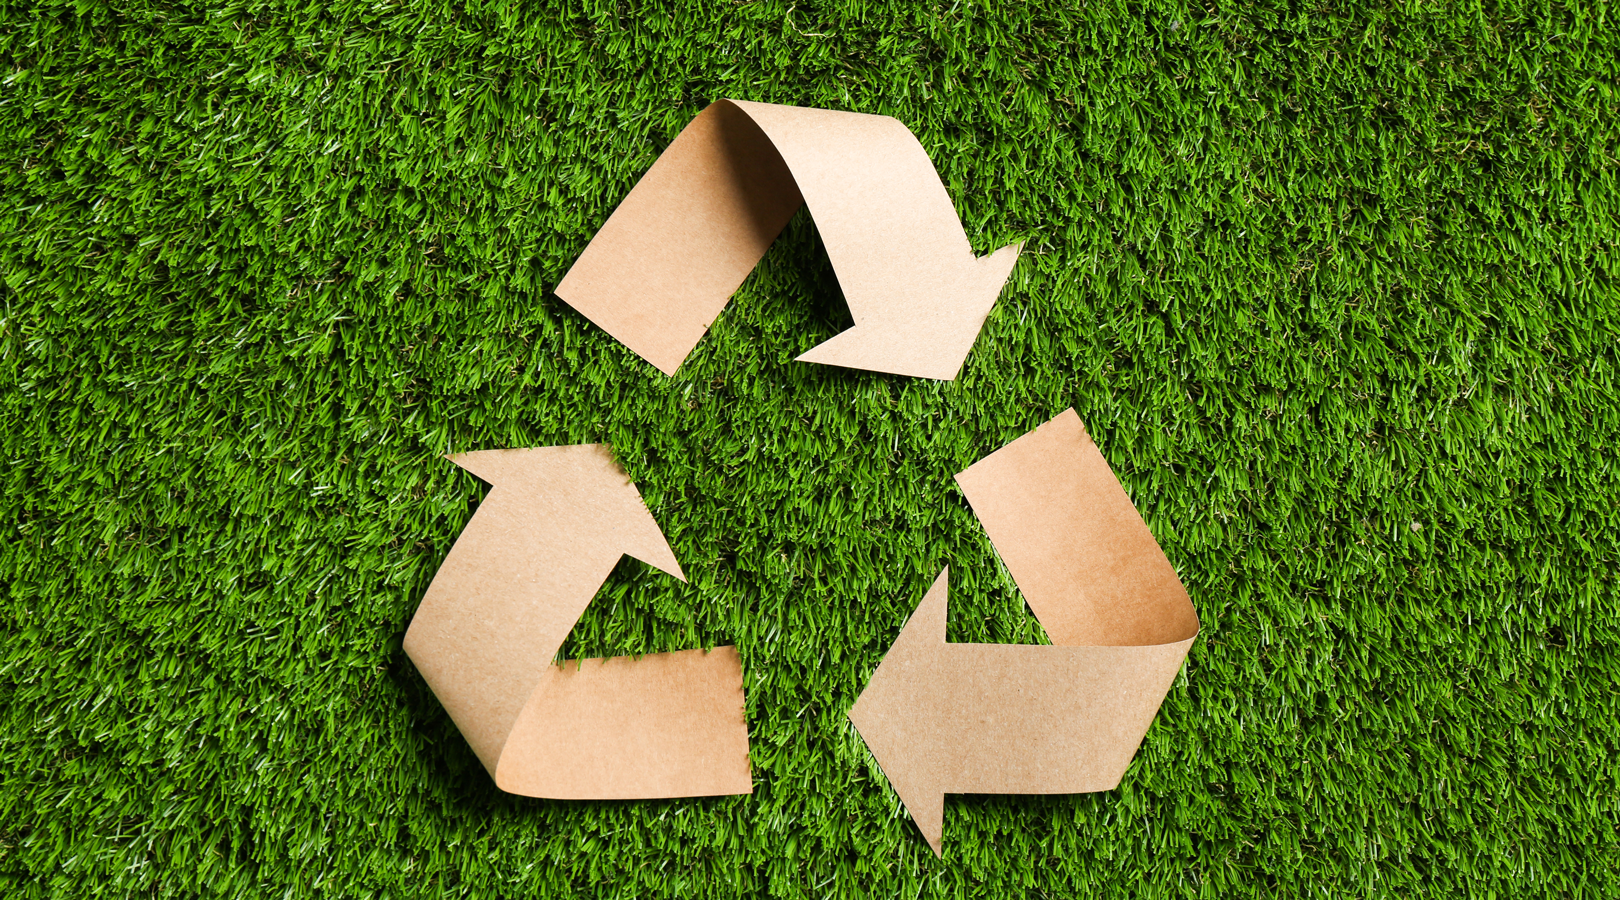 6 Tips for Sustainable Order Fulfillment as an eCommerce Business